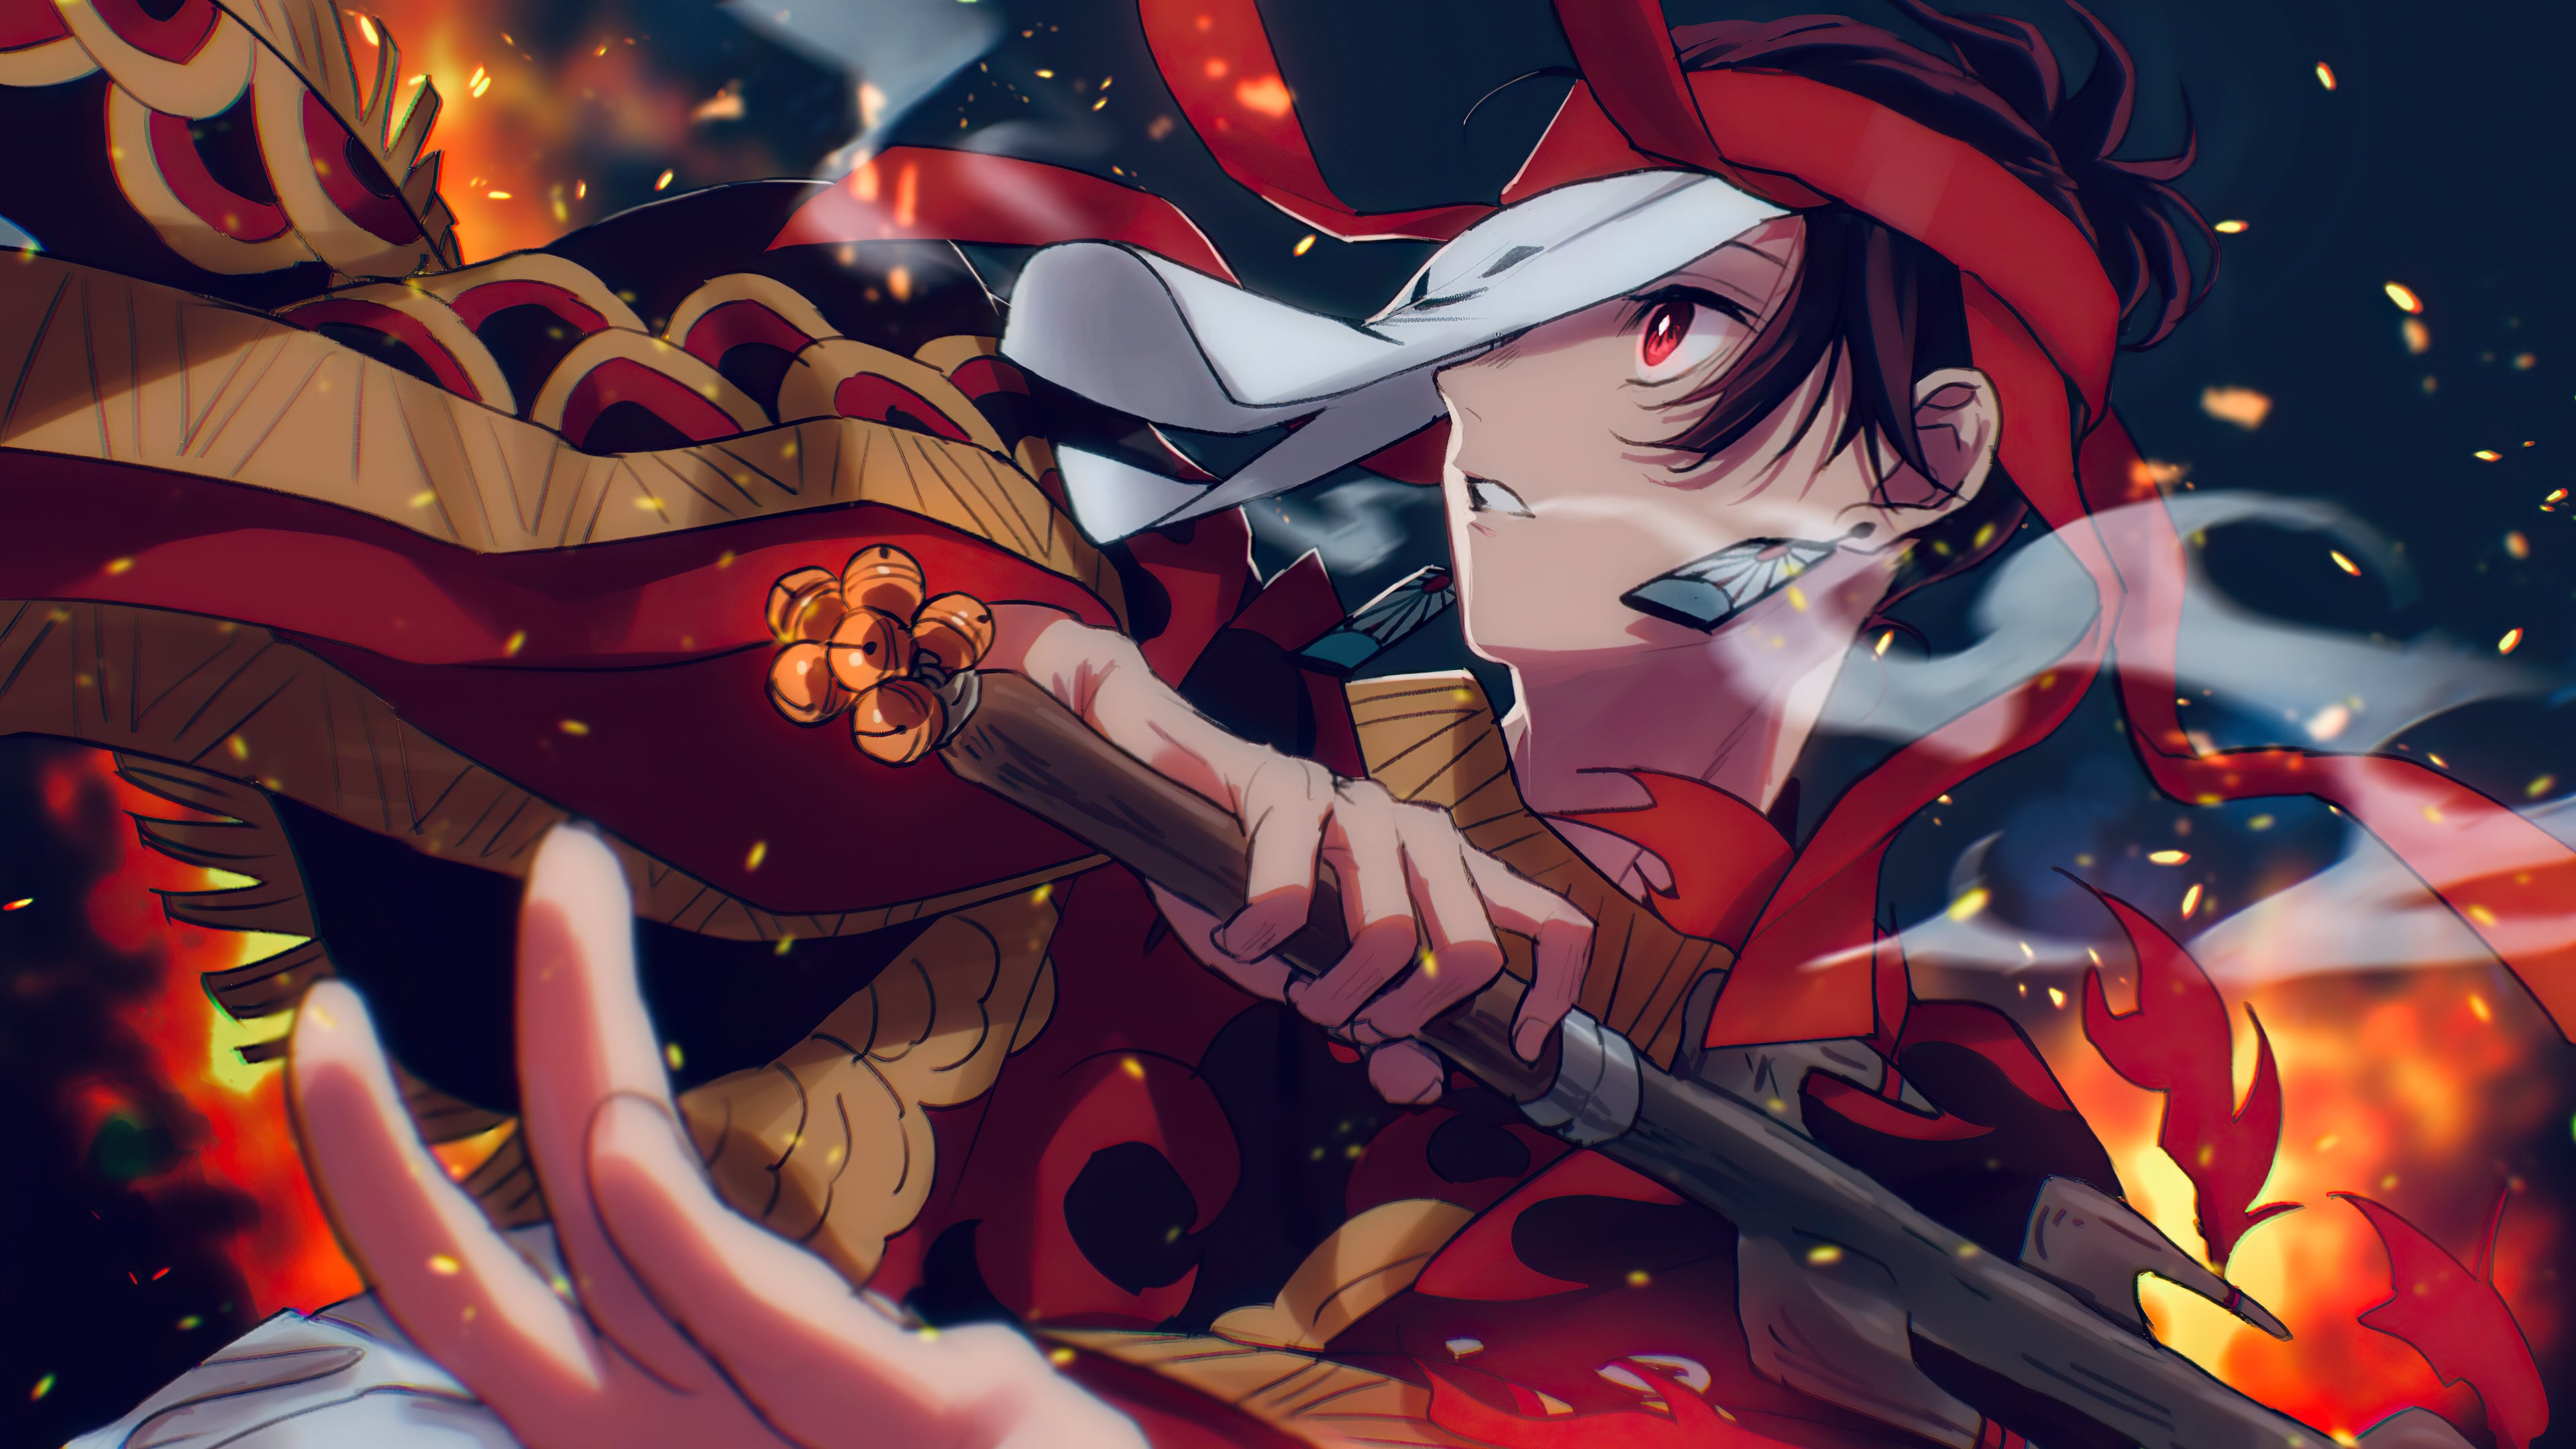 4k Demon Slayer Wallpaper Kolpaper Awesome Free Hd Wallpapers